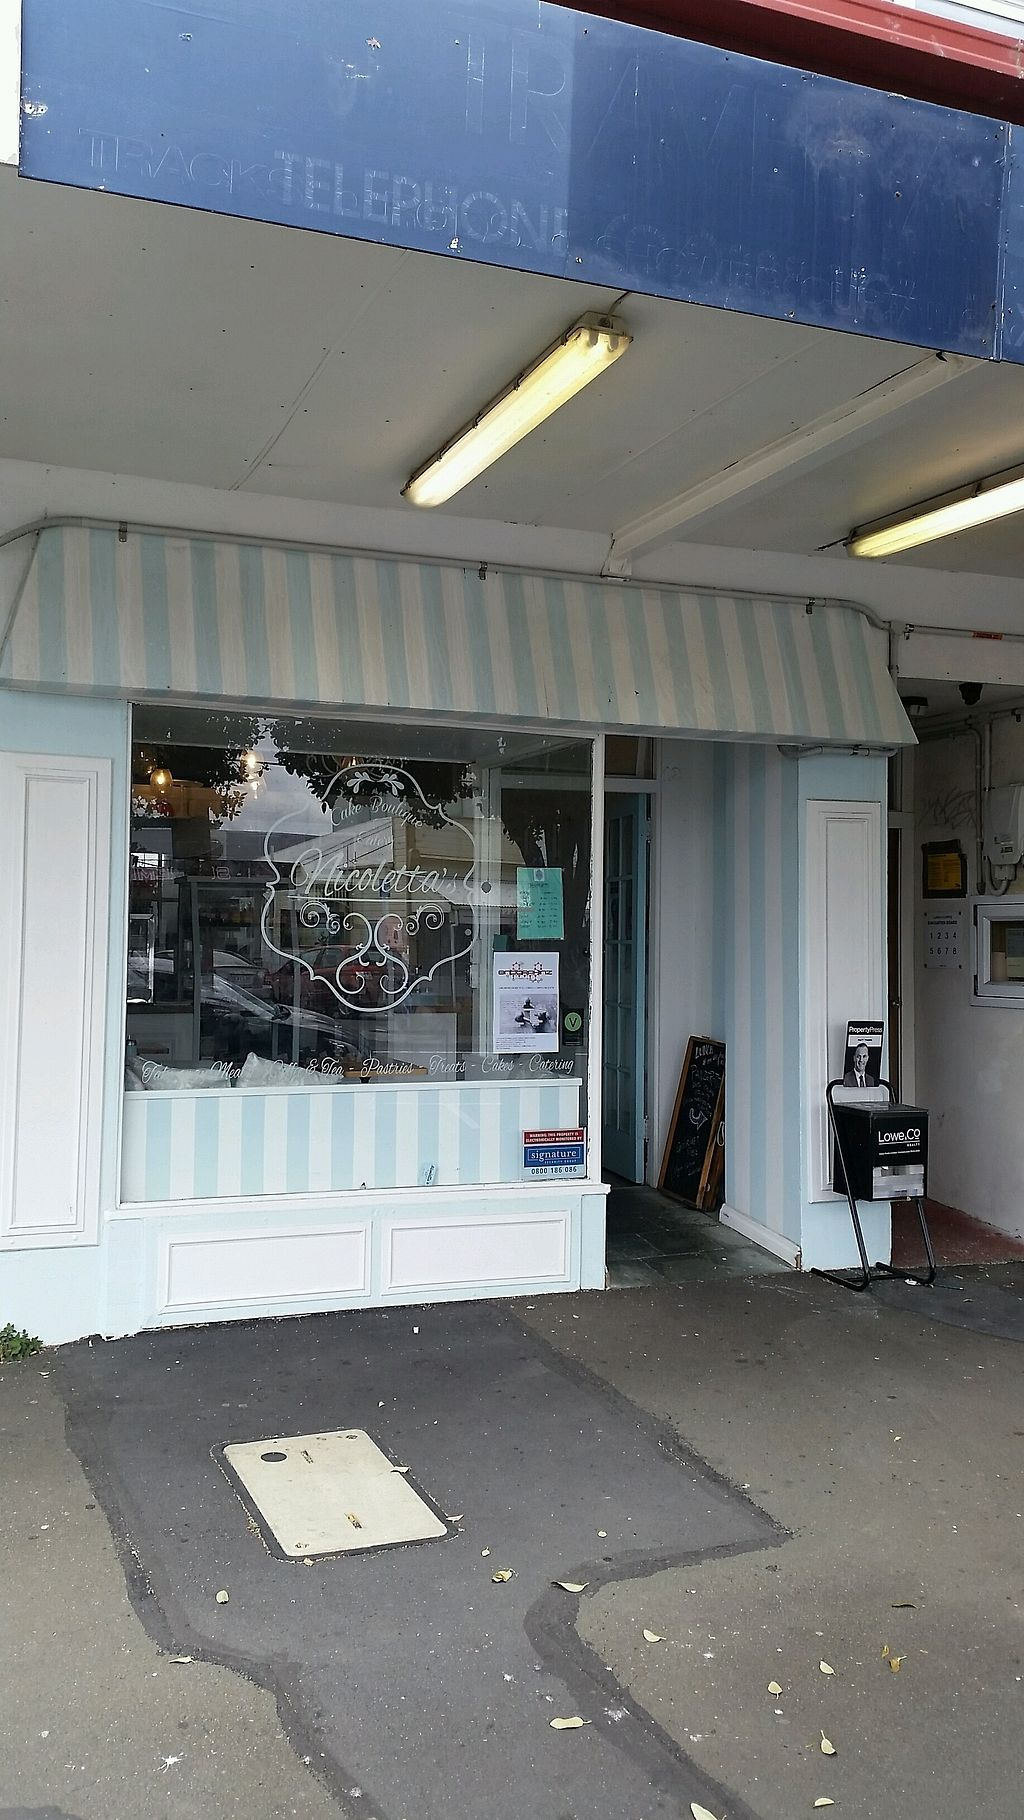 """Photo of Nicoletta's Cake Boutique  by <a href=""""/members/profile/AndyTheVWDude"""">AndyTheVWDude</a> <br/>Nicoletta's Bakery, Park Rd Miramar <br/> November 25, 2017  - <a href='/contact/abuse/image/84028/328919'>Report</a>"""